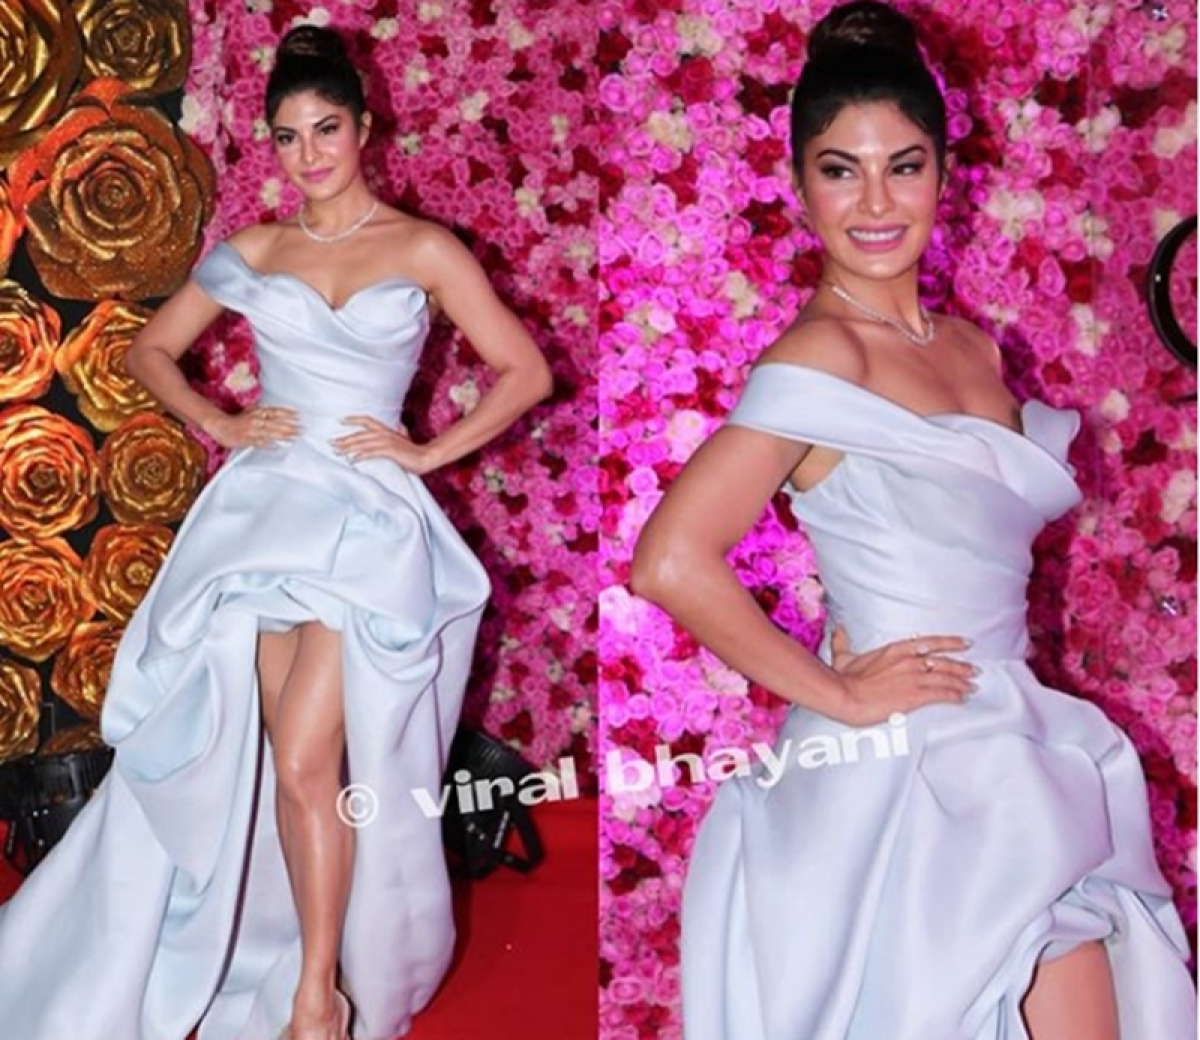 Oops! Jacqueline Fernandez nearly escapes a wardrobe malfunction on the red carpet; watch video